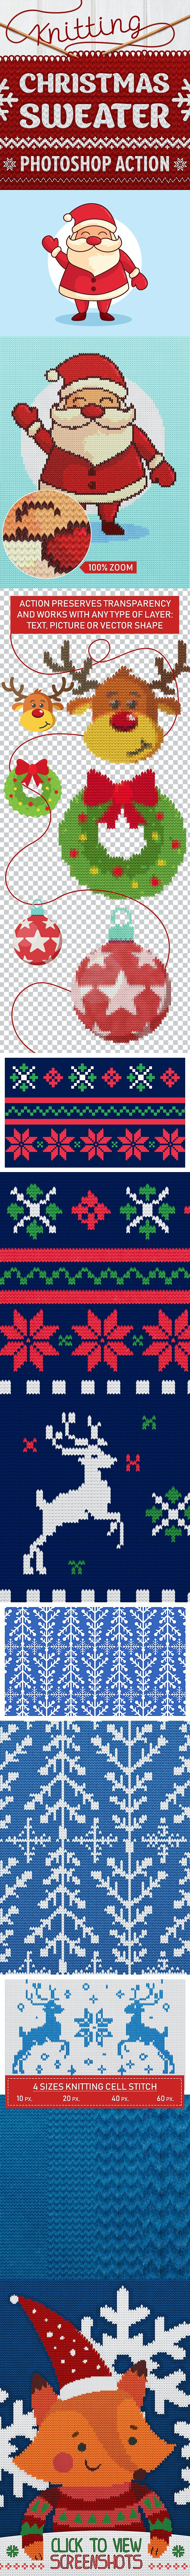 Knitted Christmas Sweater - Photoshop Actions - Utilities Actions